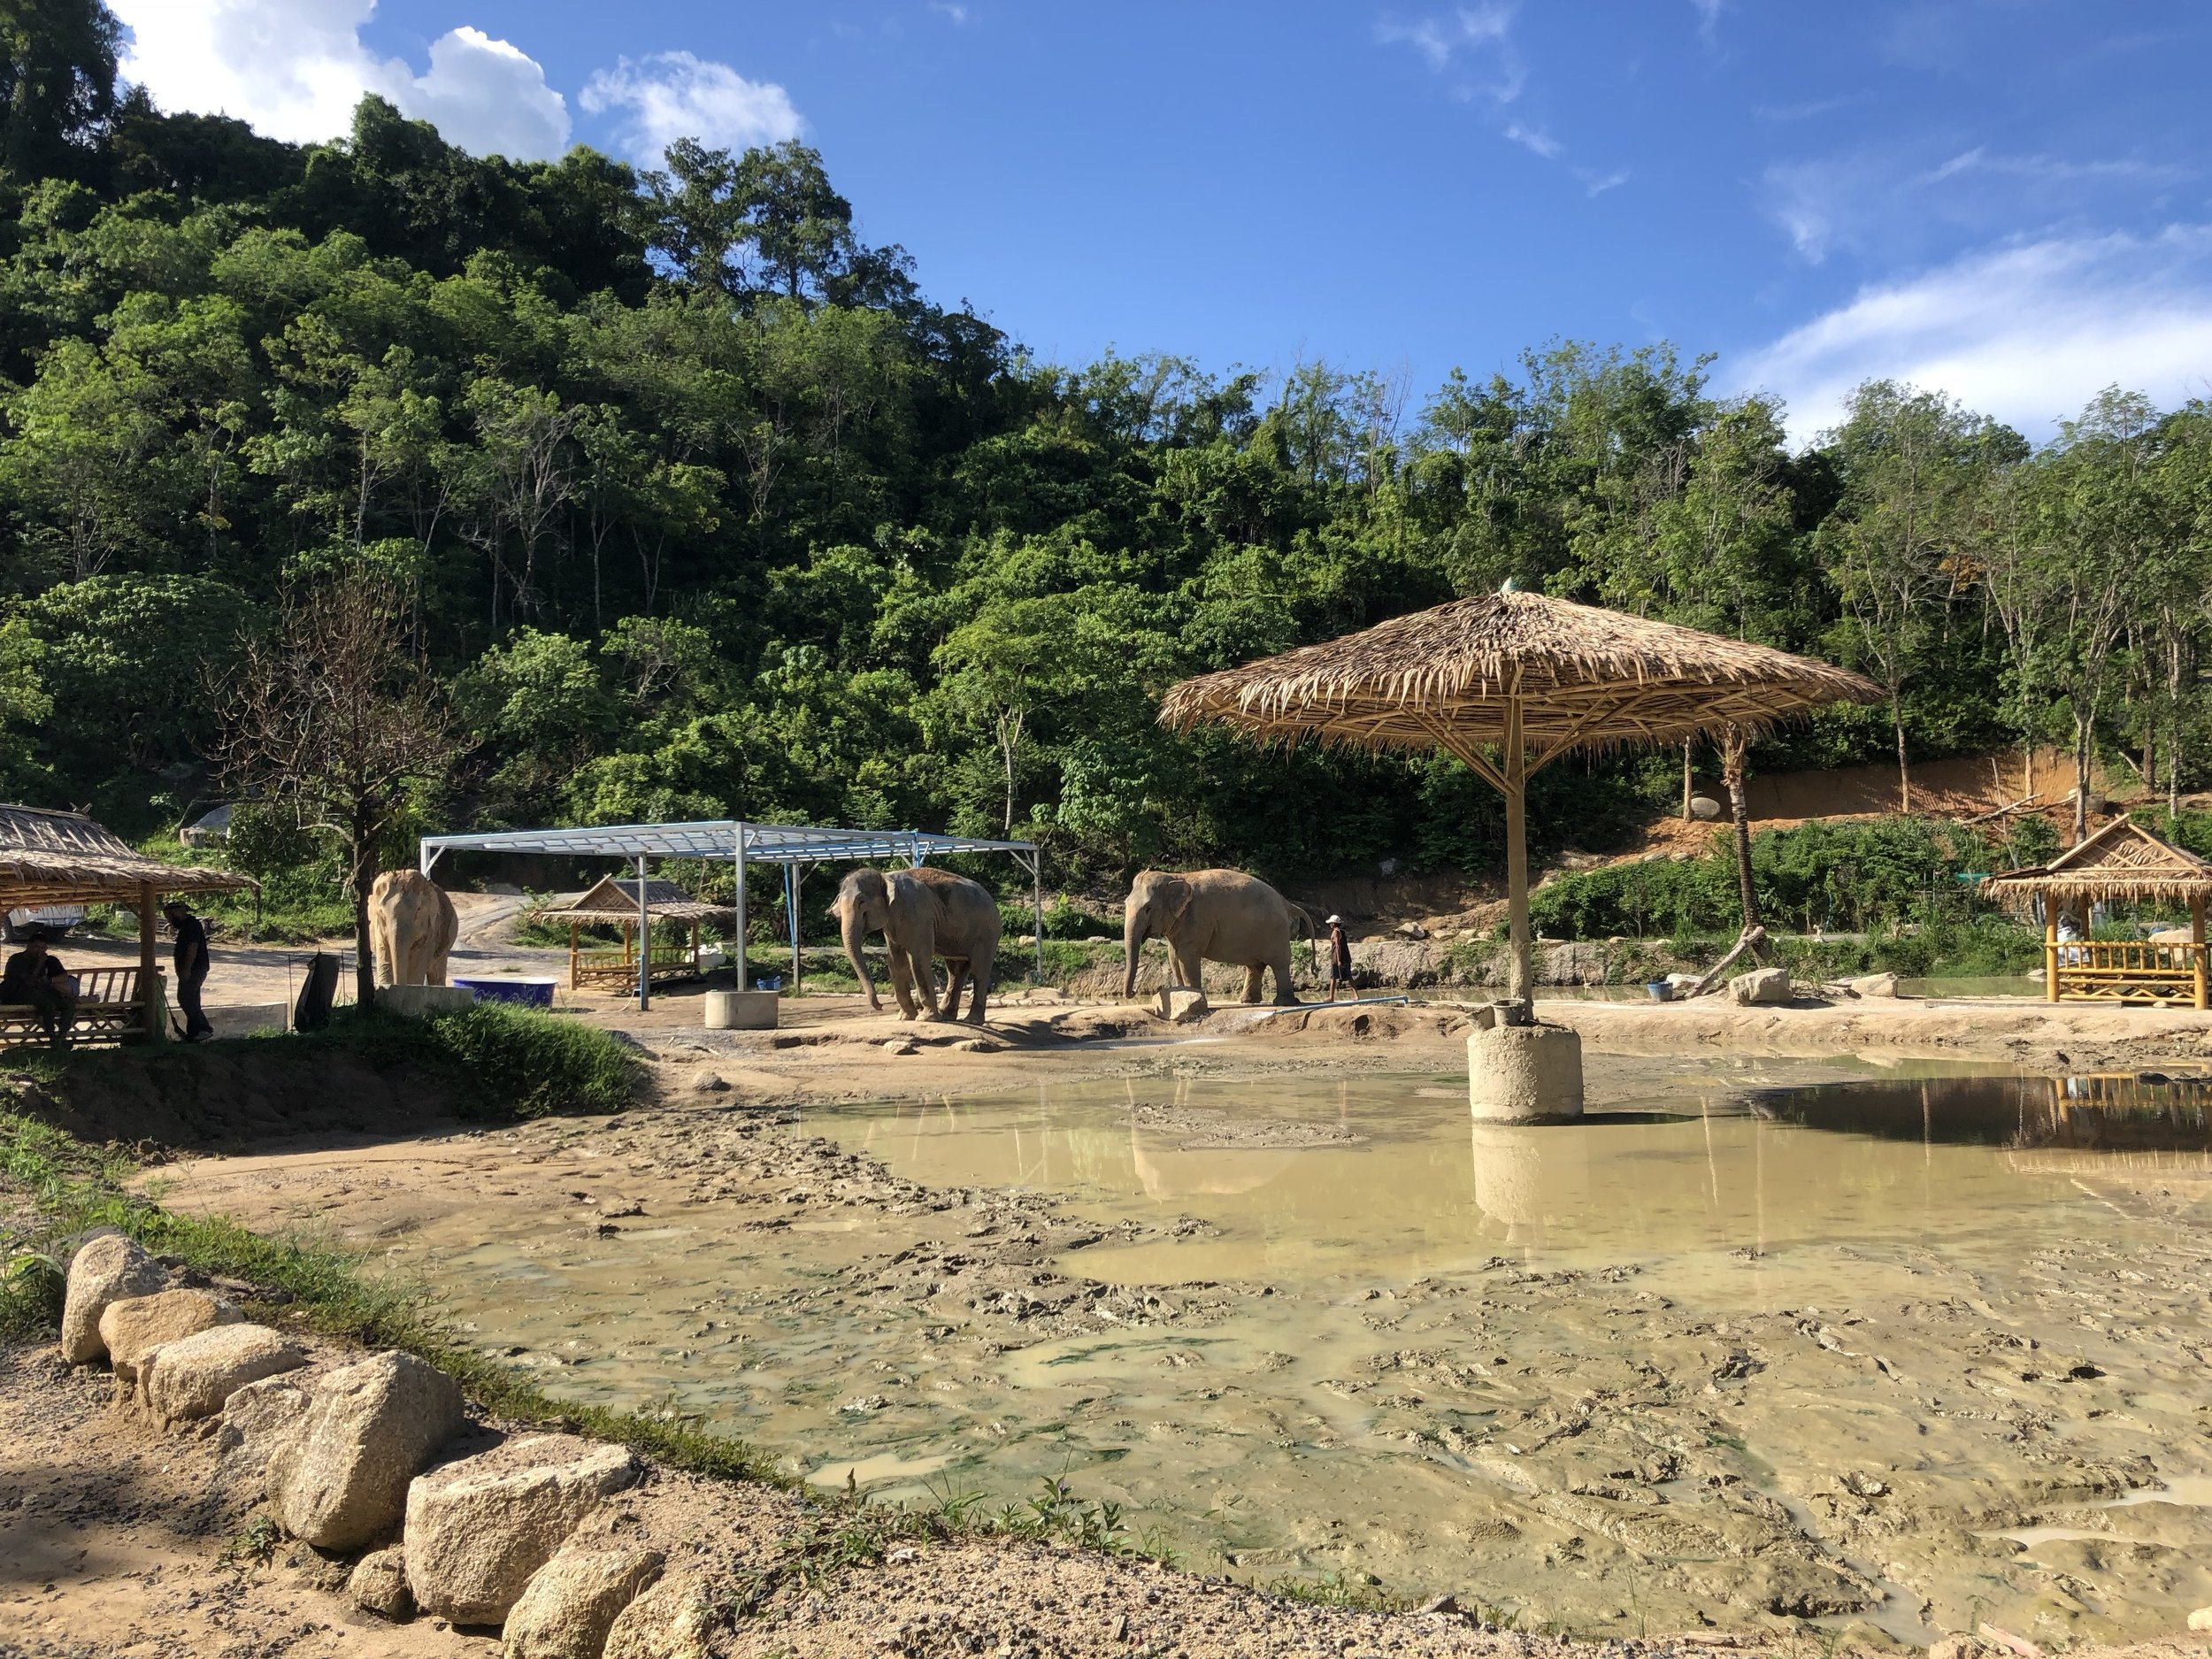 The Elephants living life at the sanctuary